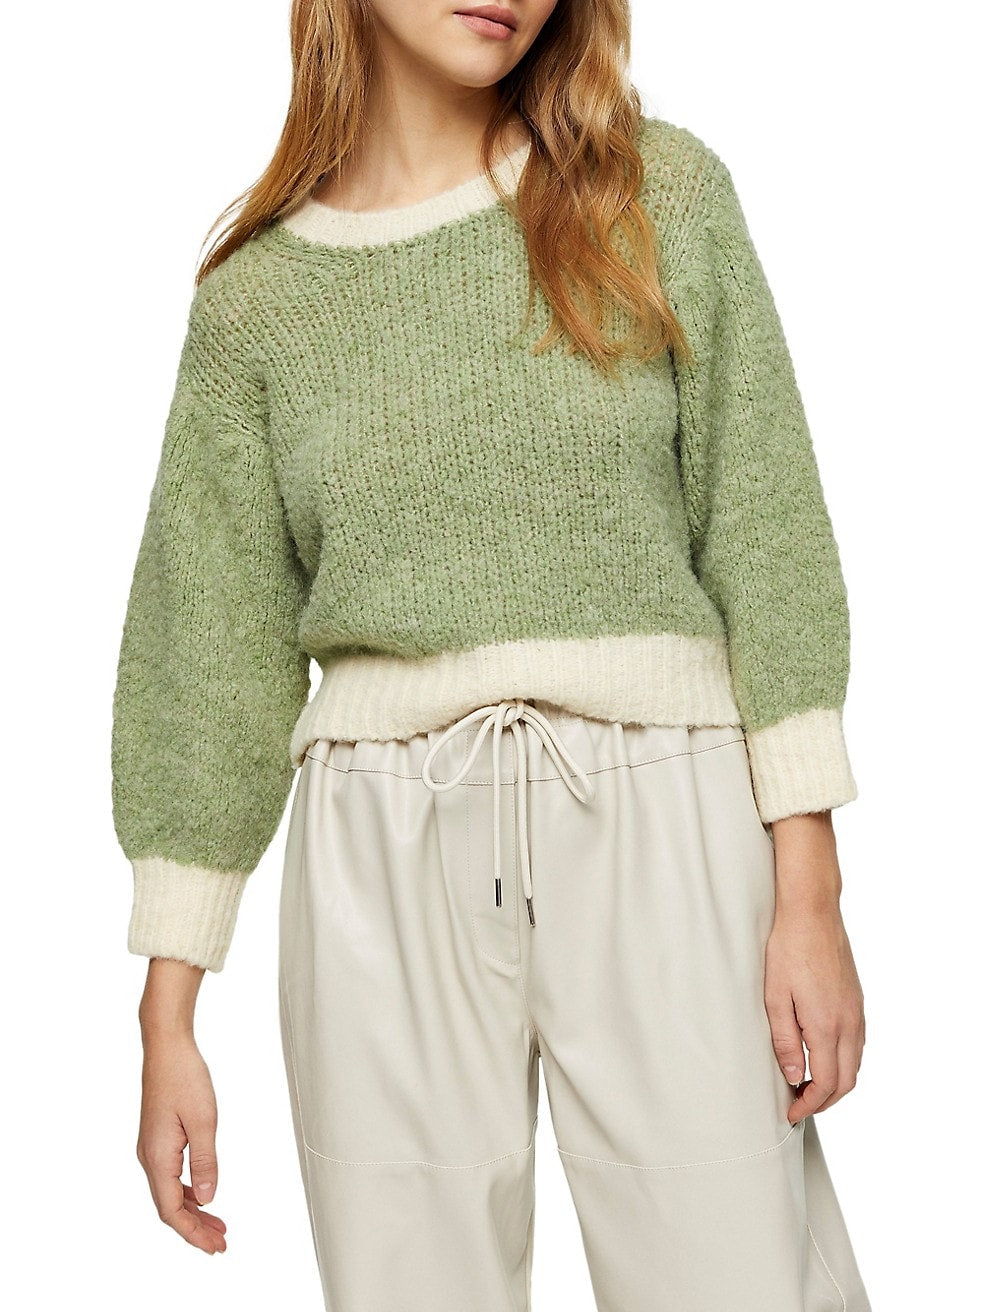 Contrast-Trim Cropped Sweater